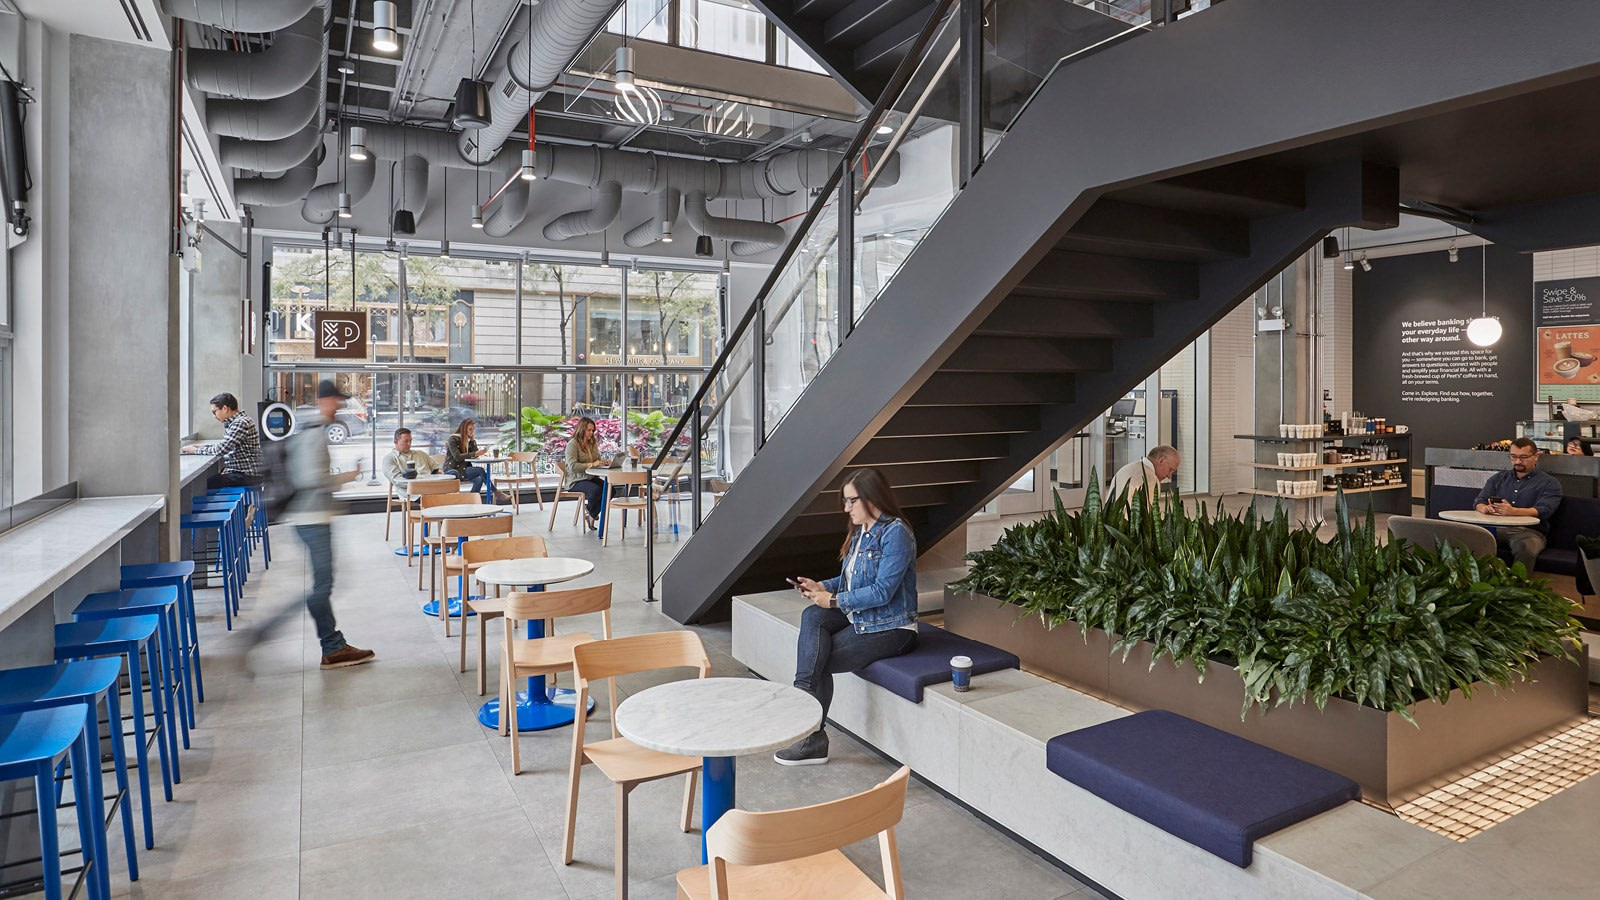 The Main Stair at Capital One Café at 100 State Street